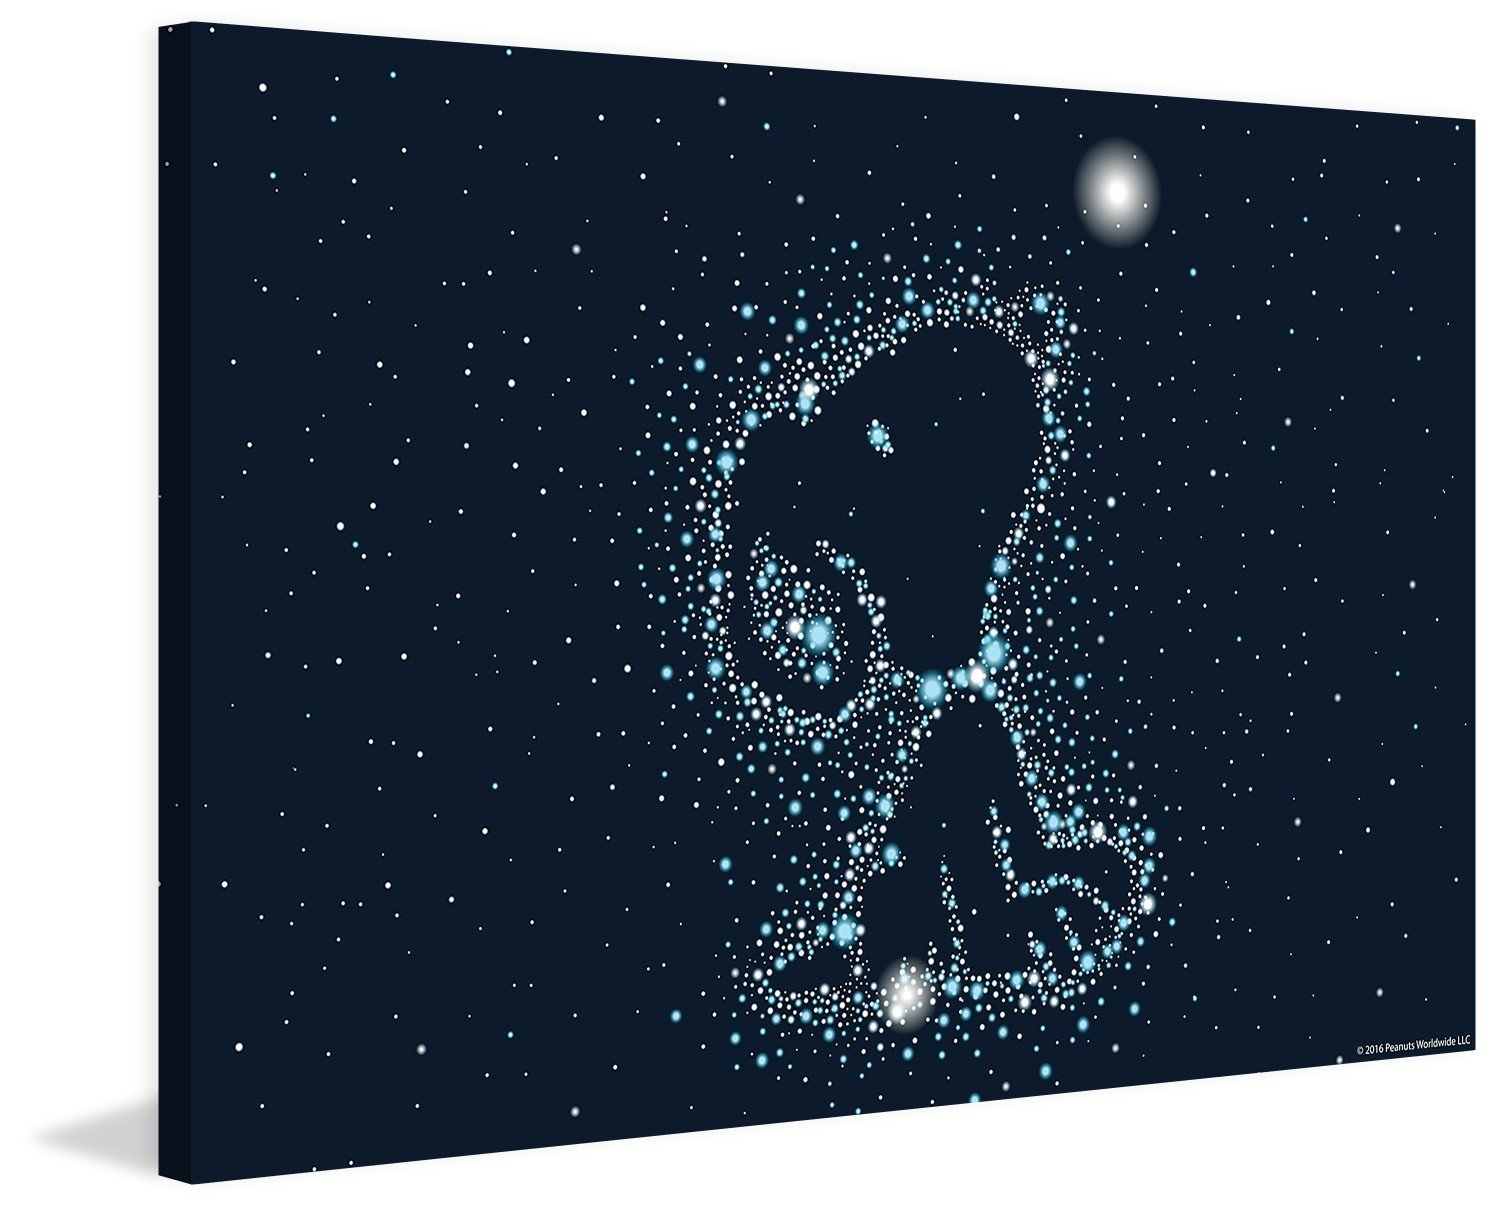 Marmont Hill Snoopy Constellation キャンバスアート 6サイズ